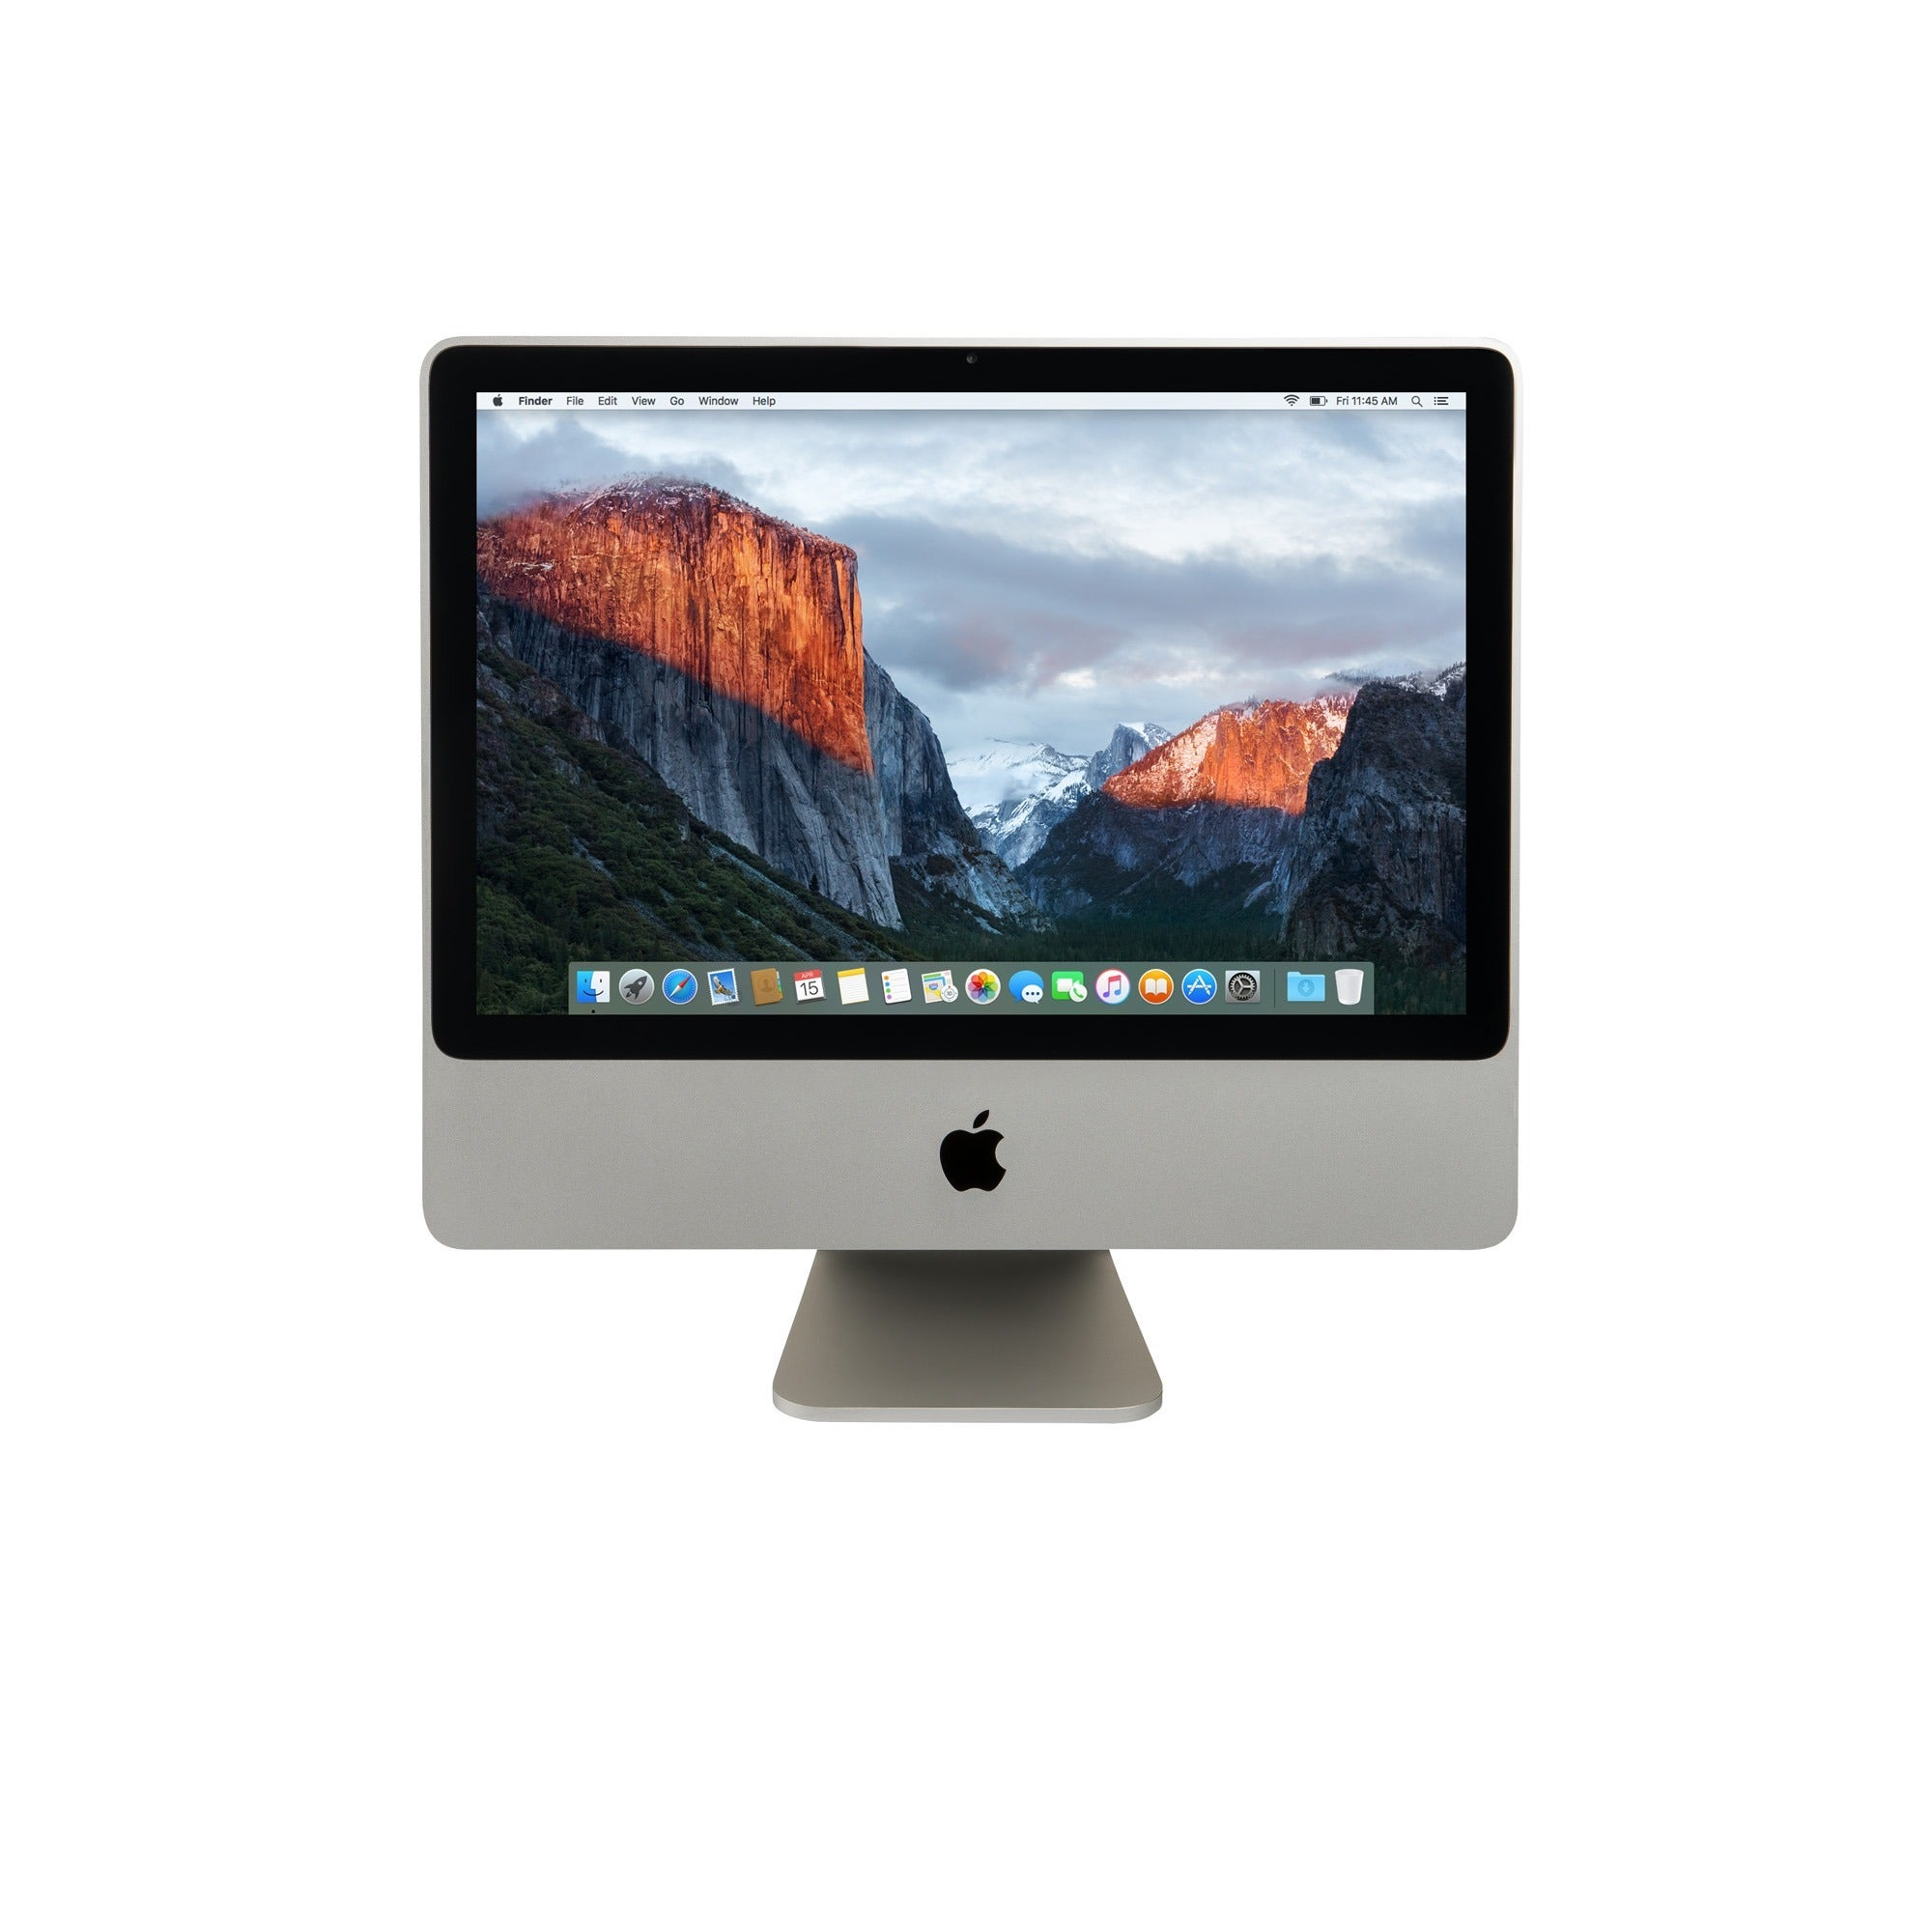 "Apple MA878LL/A 24"" iMac Desktop"